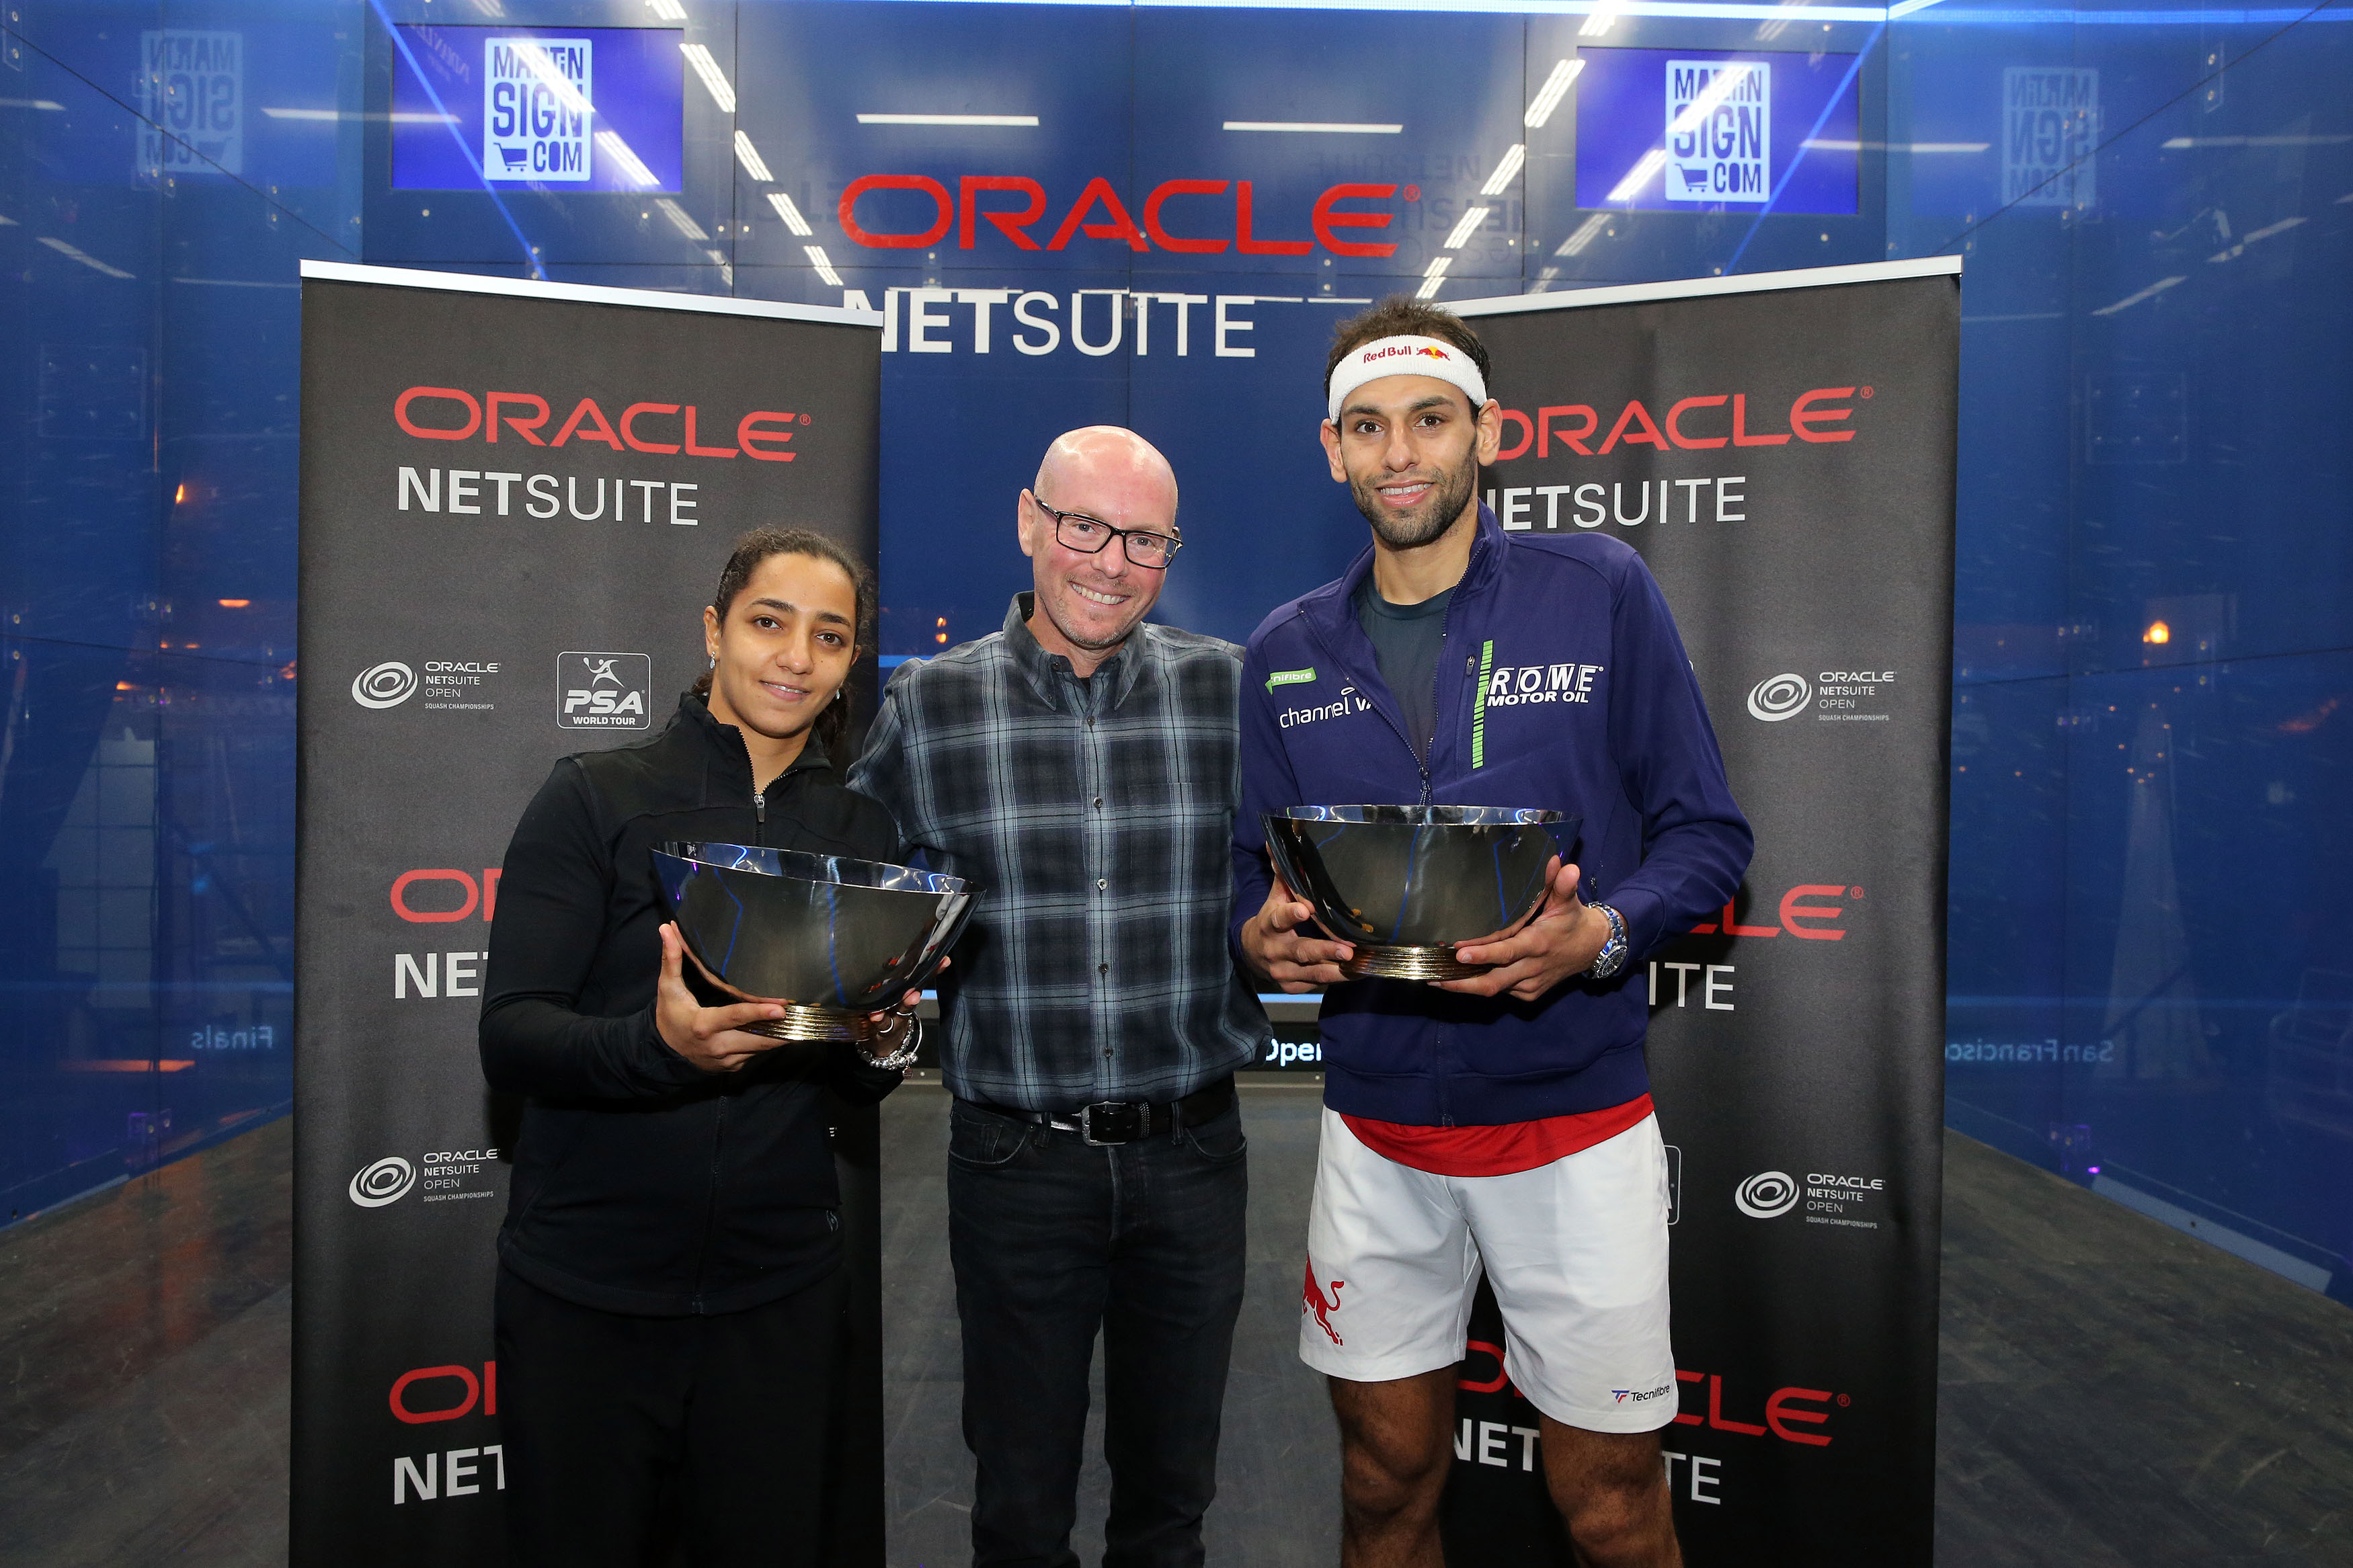 Top Seeds El Welily and ElShorbagy Claim 2019 Oracle NetSuite Open Titles